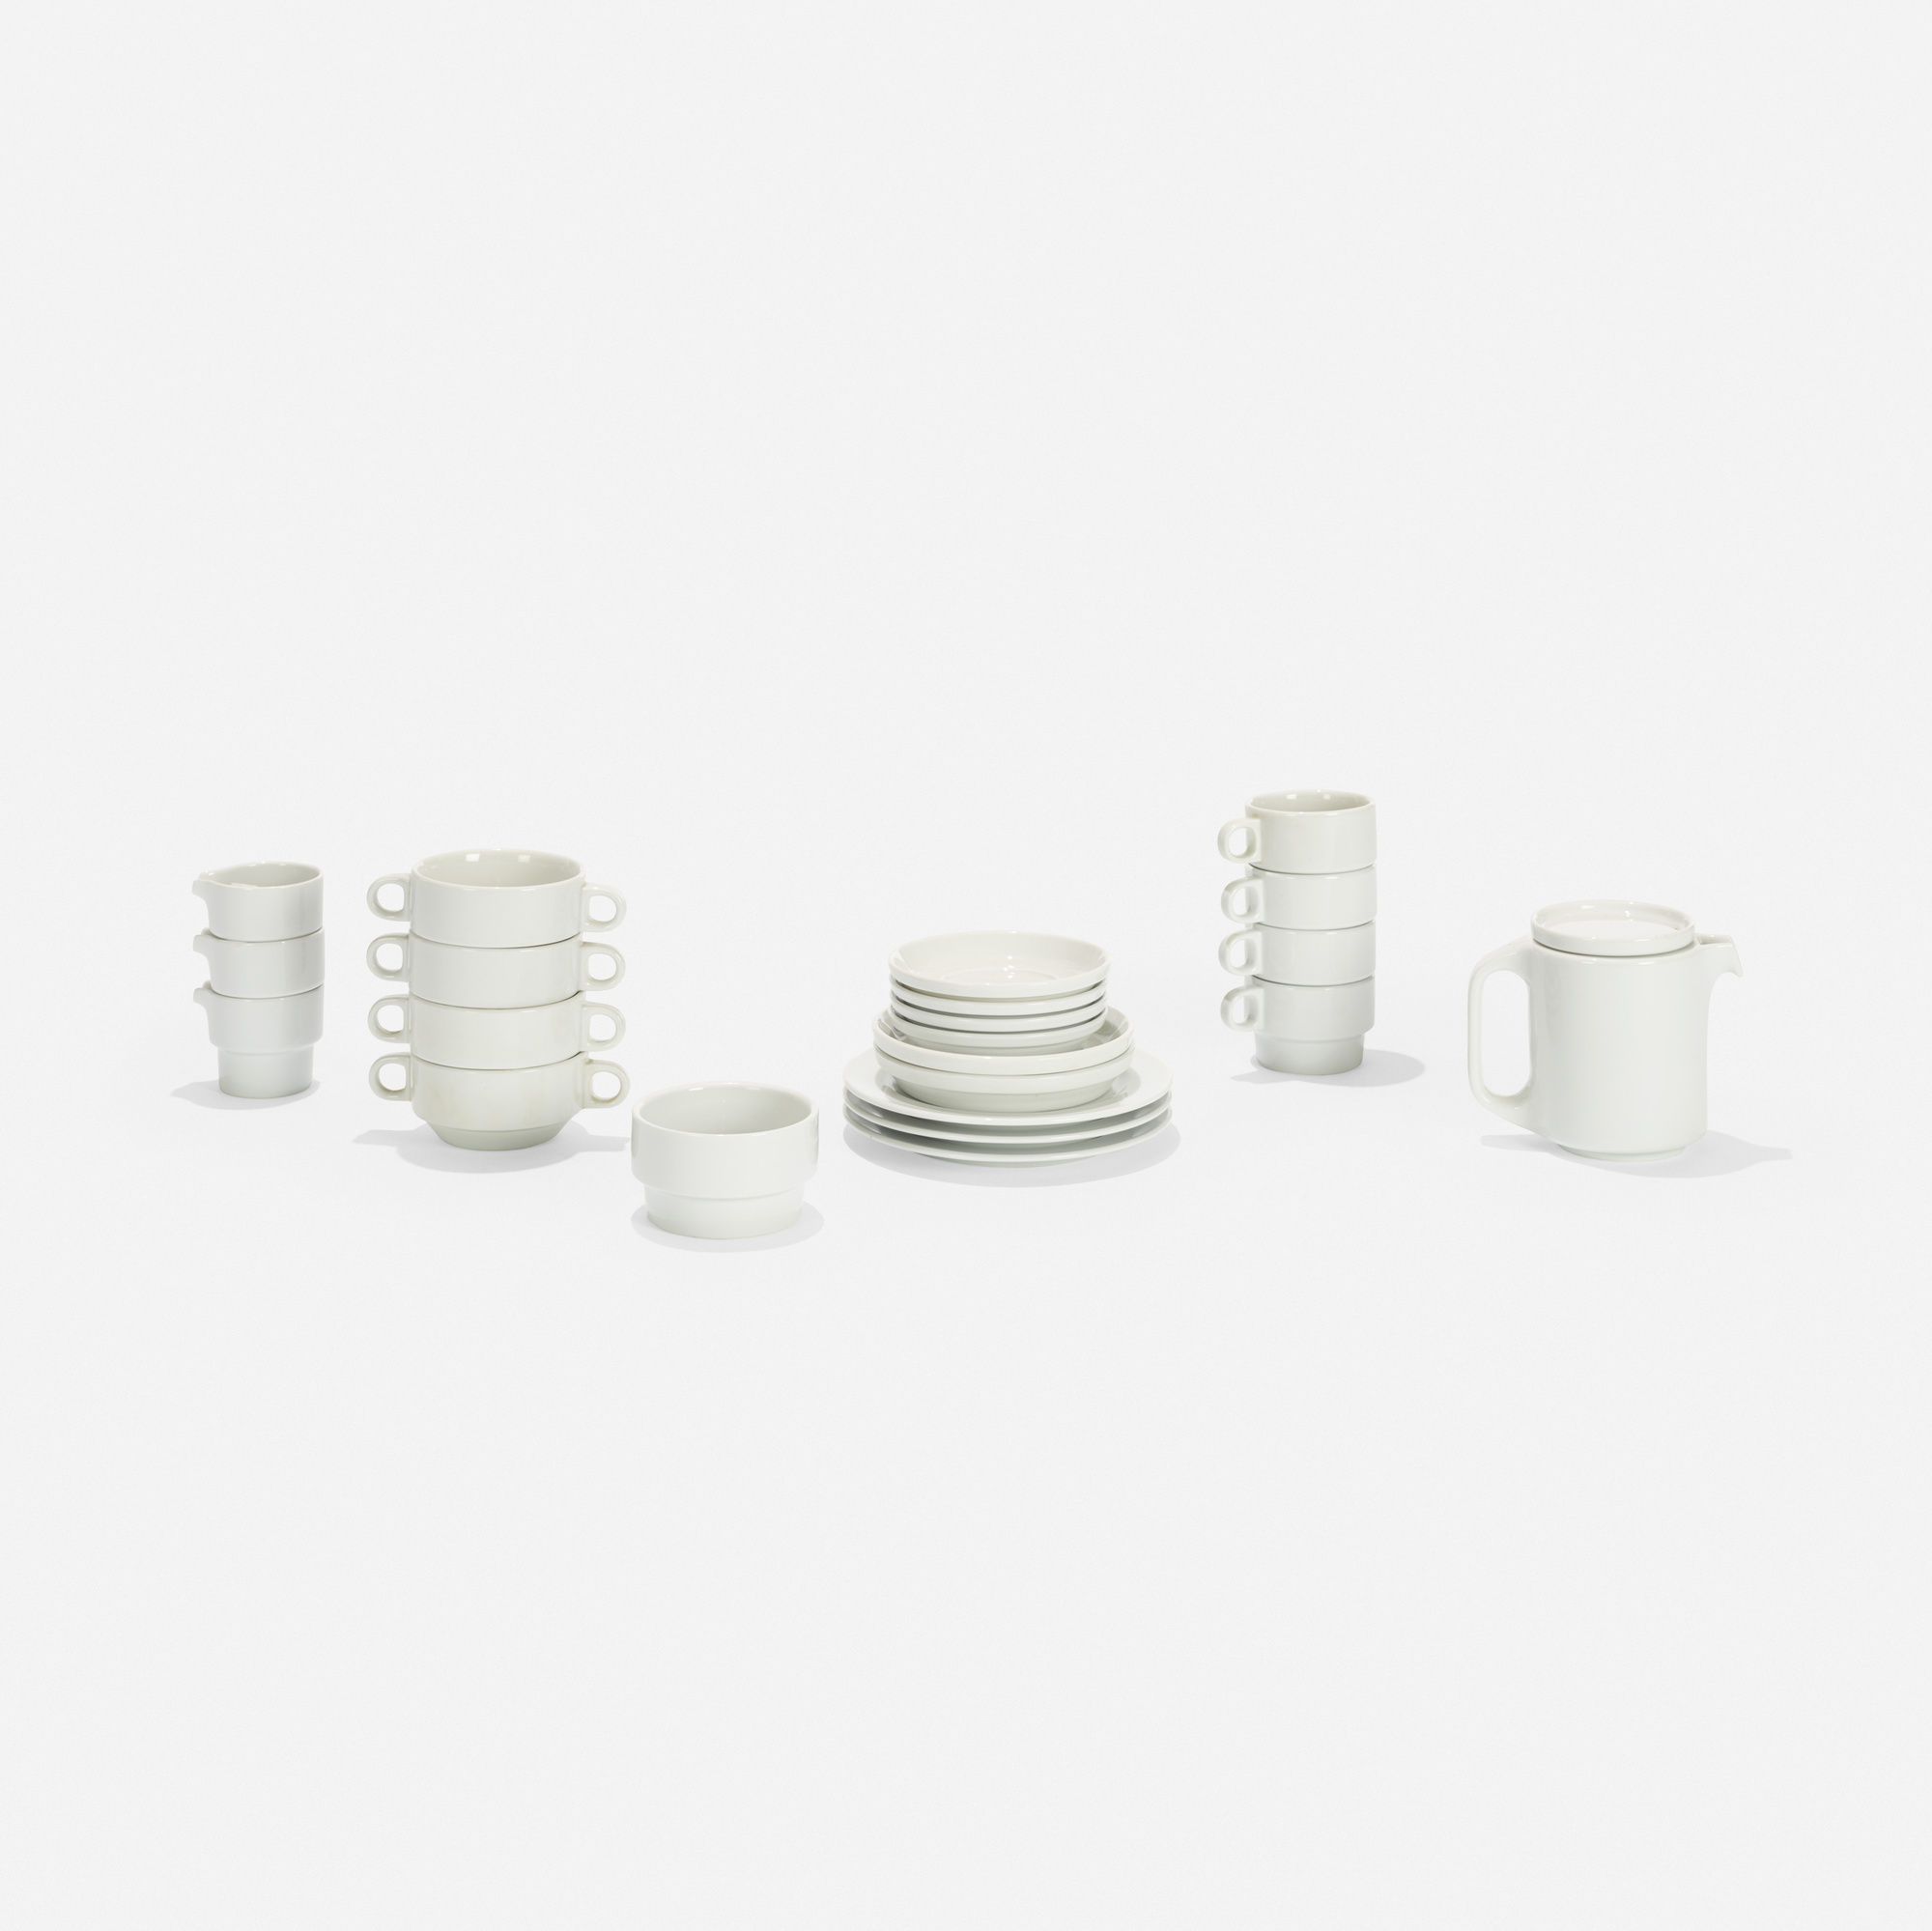 138: Nick Roericht / Stacking tableware, model TC 100 (1 of 3)